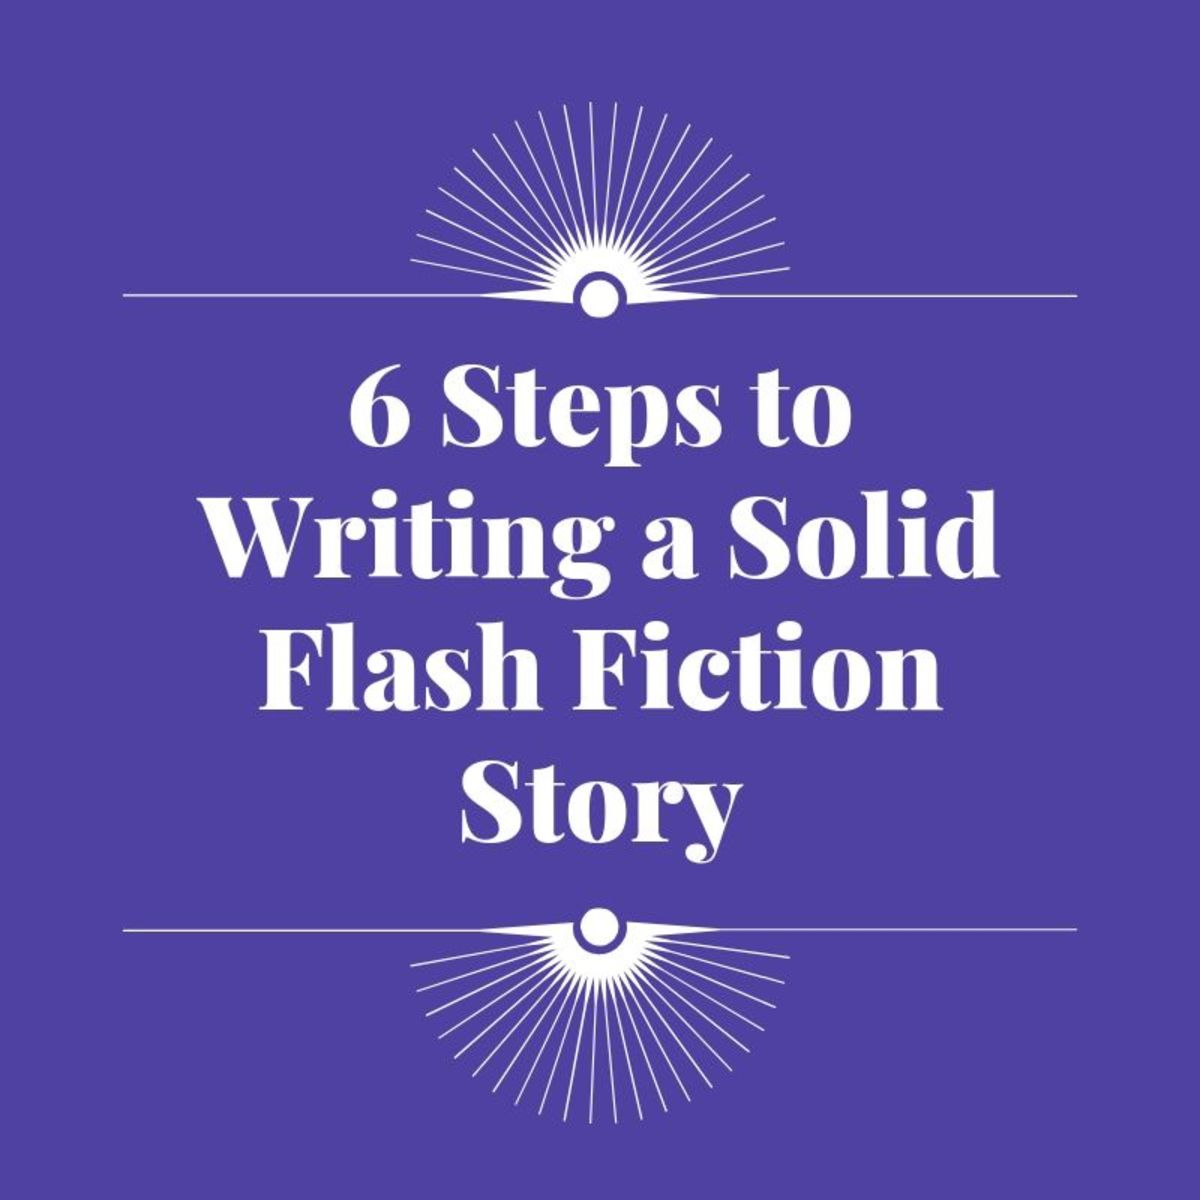 6 Steps to Writing a Solid Flash Fiction Story